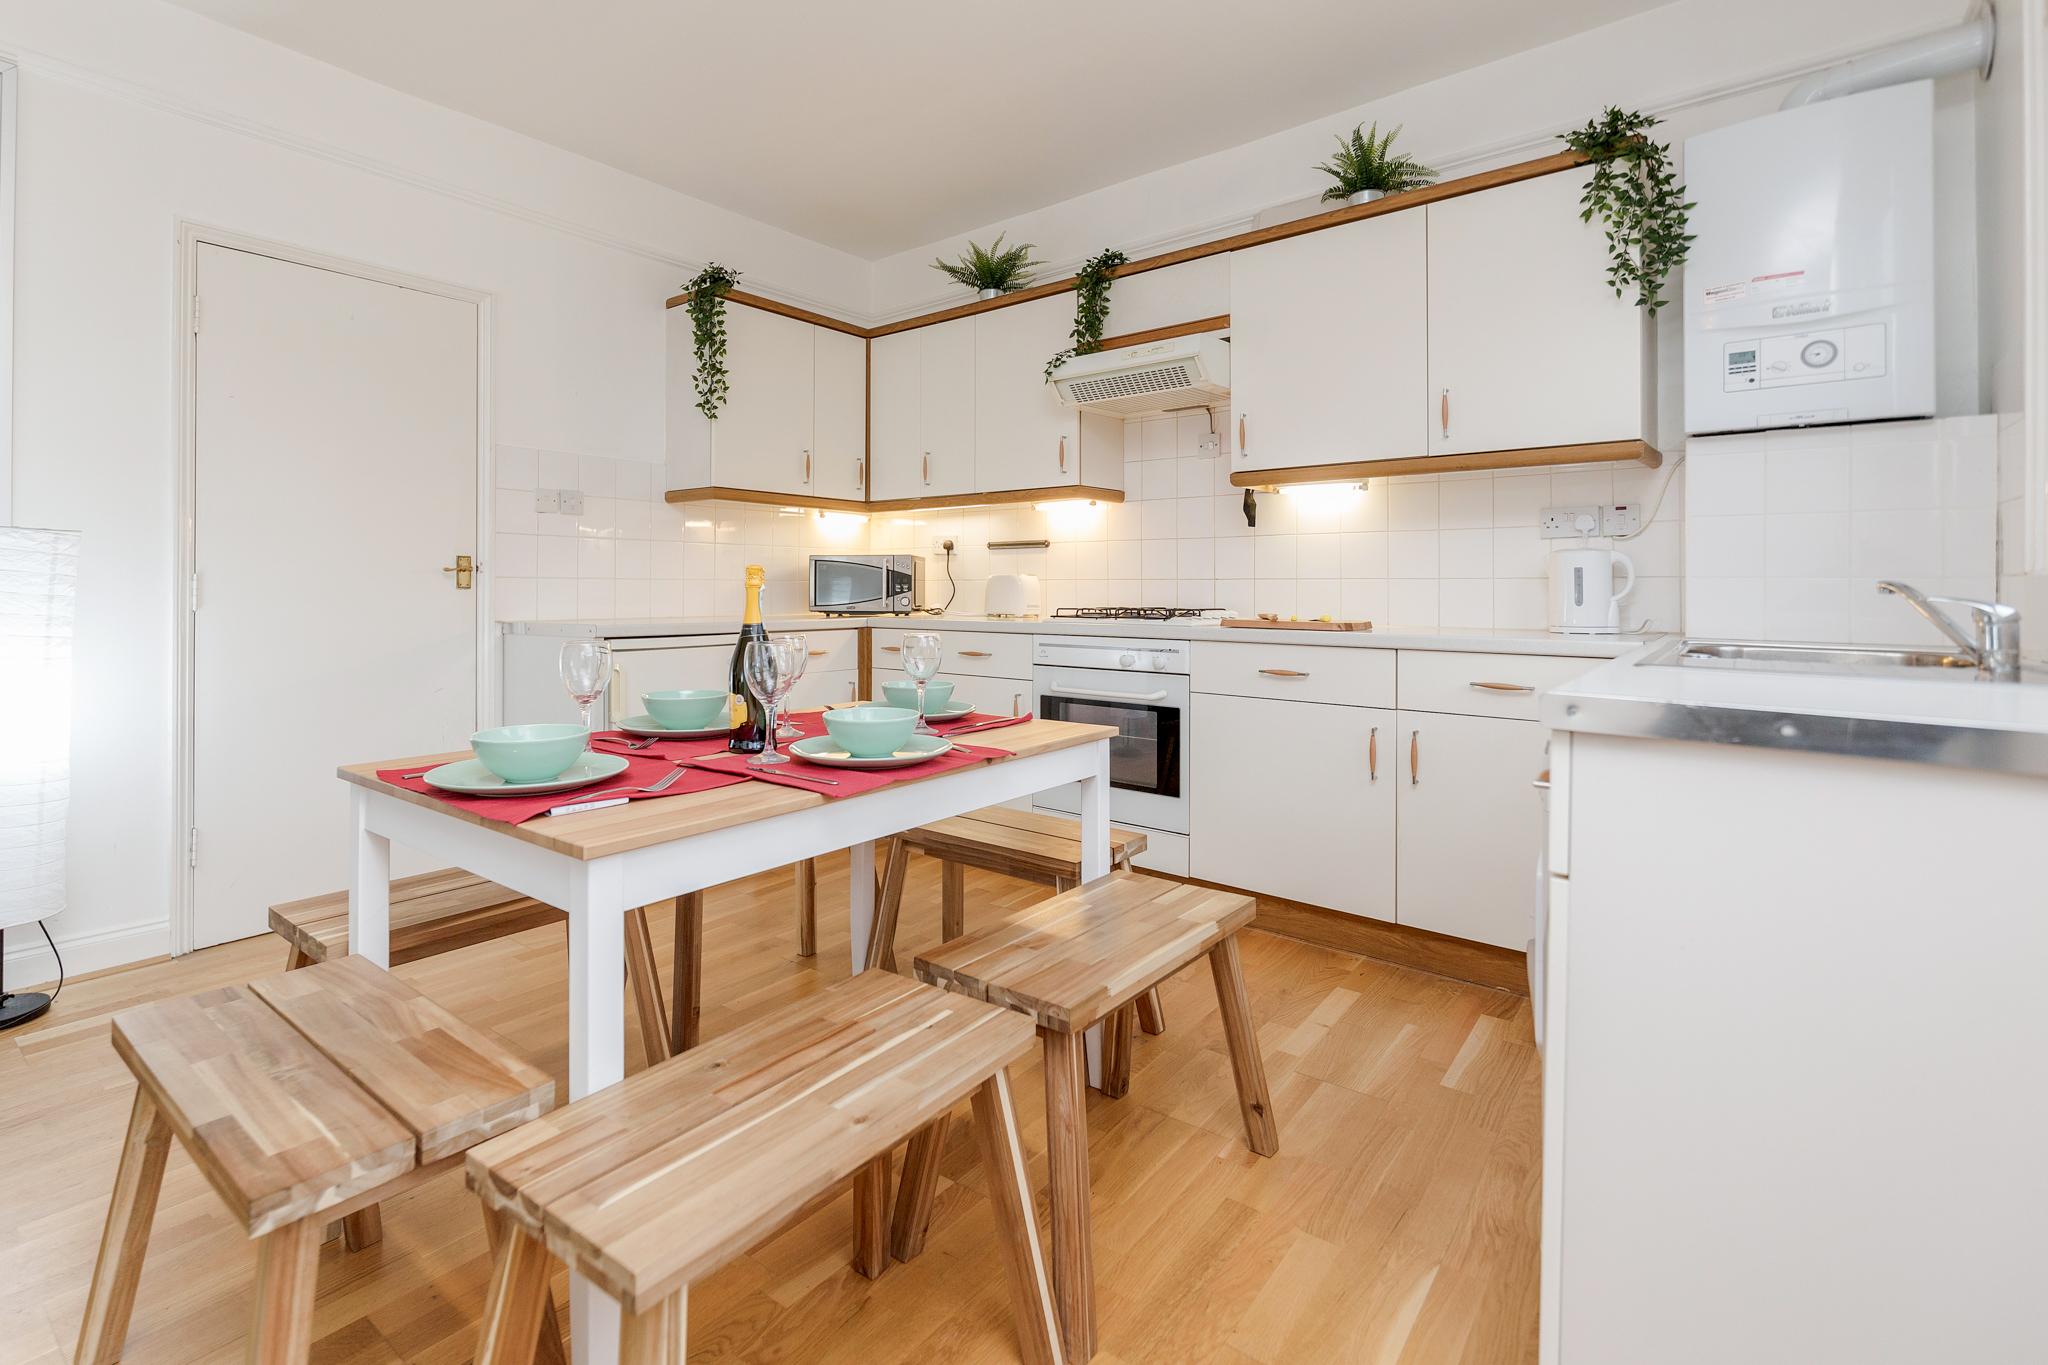 Contemporary East London Style Apartment in the heart of Brick Lane - one Minute from The Truman Brewery  photo 20332539